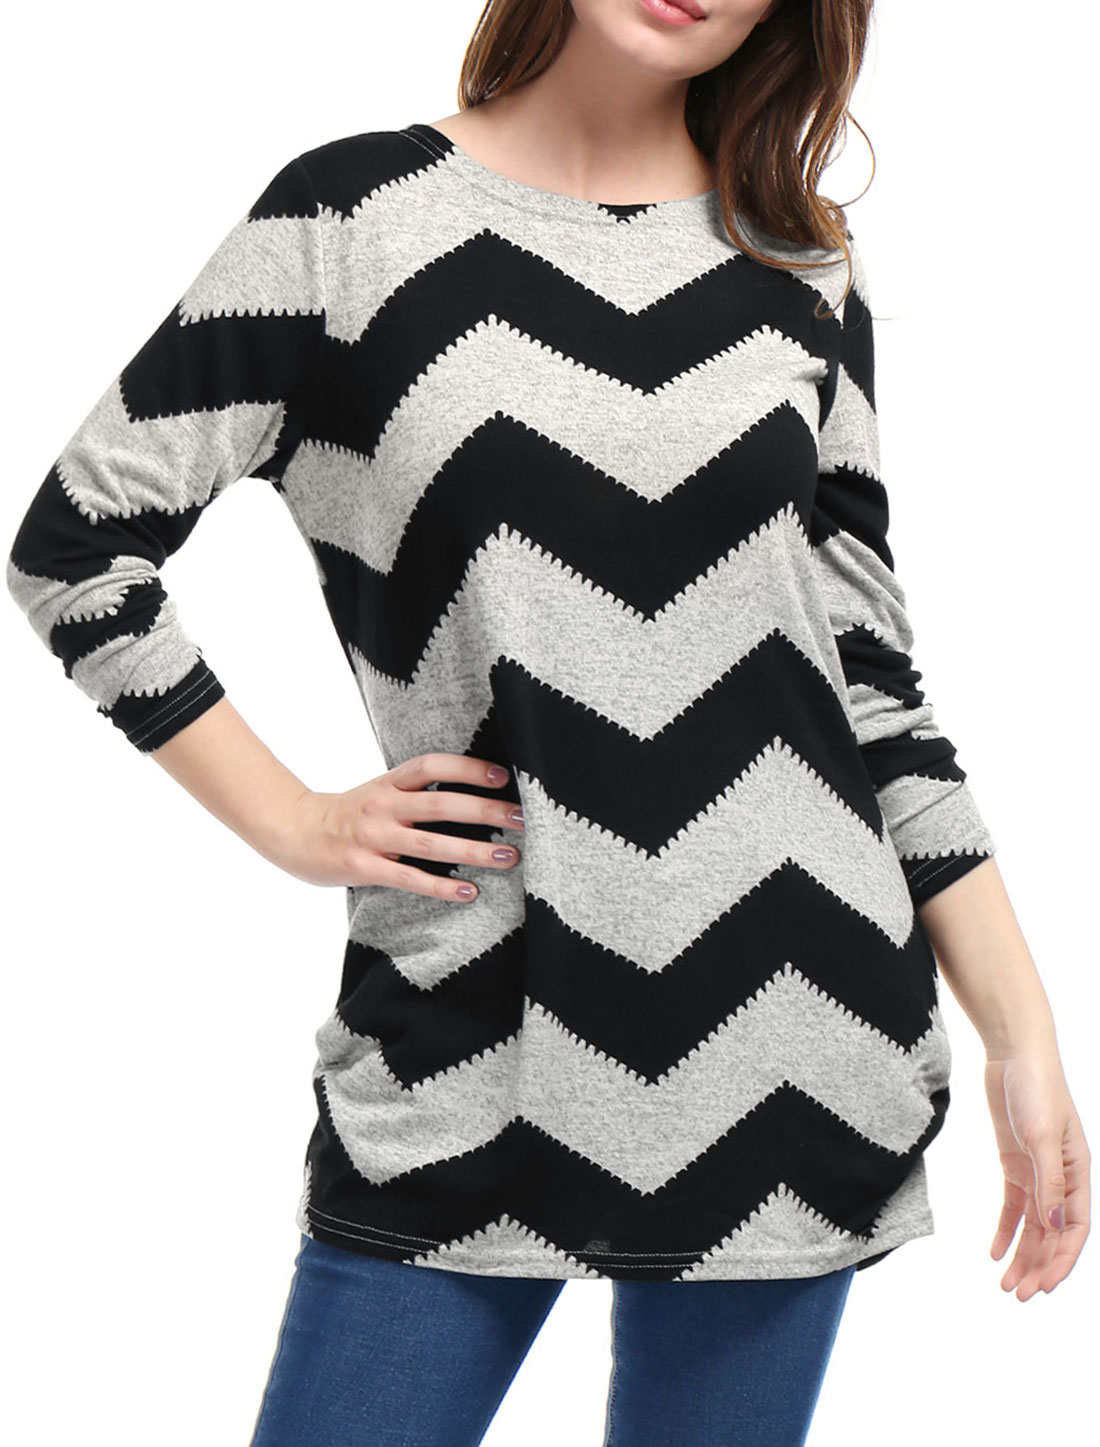 Woman Zig-Zag Pattern Knitted Relax Fit Tunic Top Black Gray M